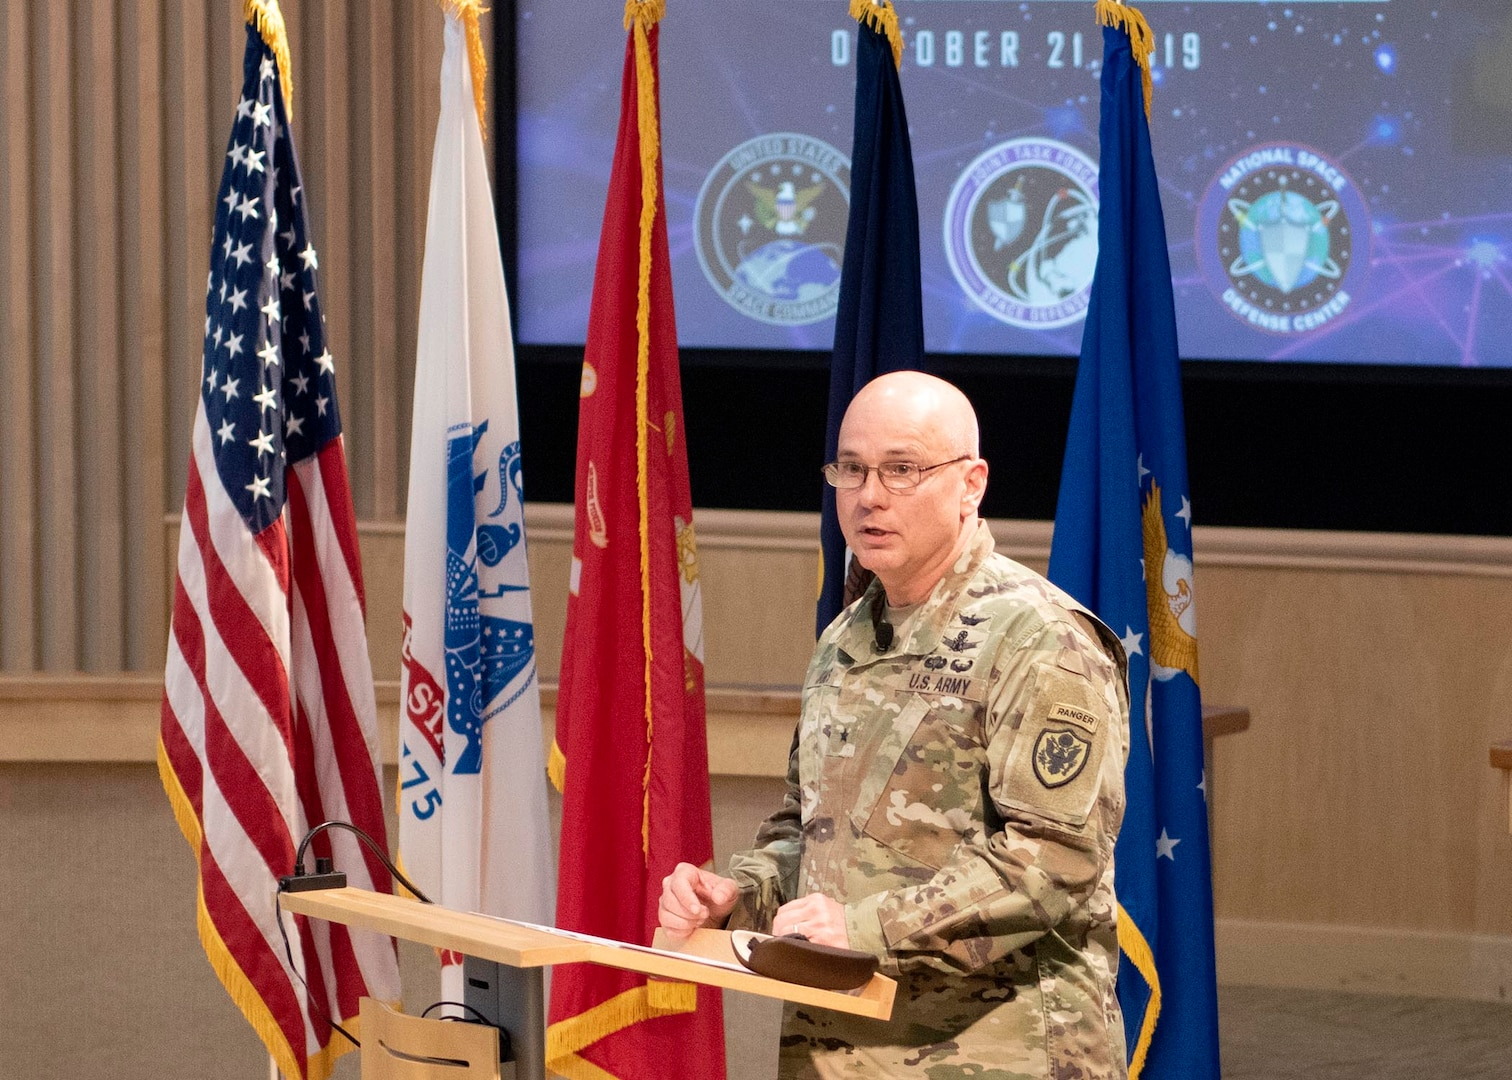 U.S. Army BG Thomas James delivers remarks to recognize the establishment of Joint Task Force Space Defense during a ceremony held at Schriever Air Force Base, Colo., Oct. 21, 2019. Joint Task Force Space Defense is one of two subordinate commands to USSPACECOM with a mission to conduct space superiority operations. (DoD photo by Patrick Morrow)